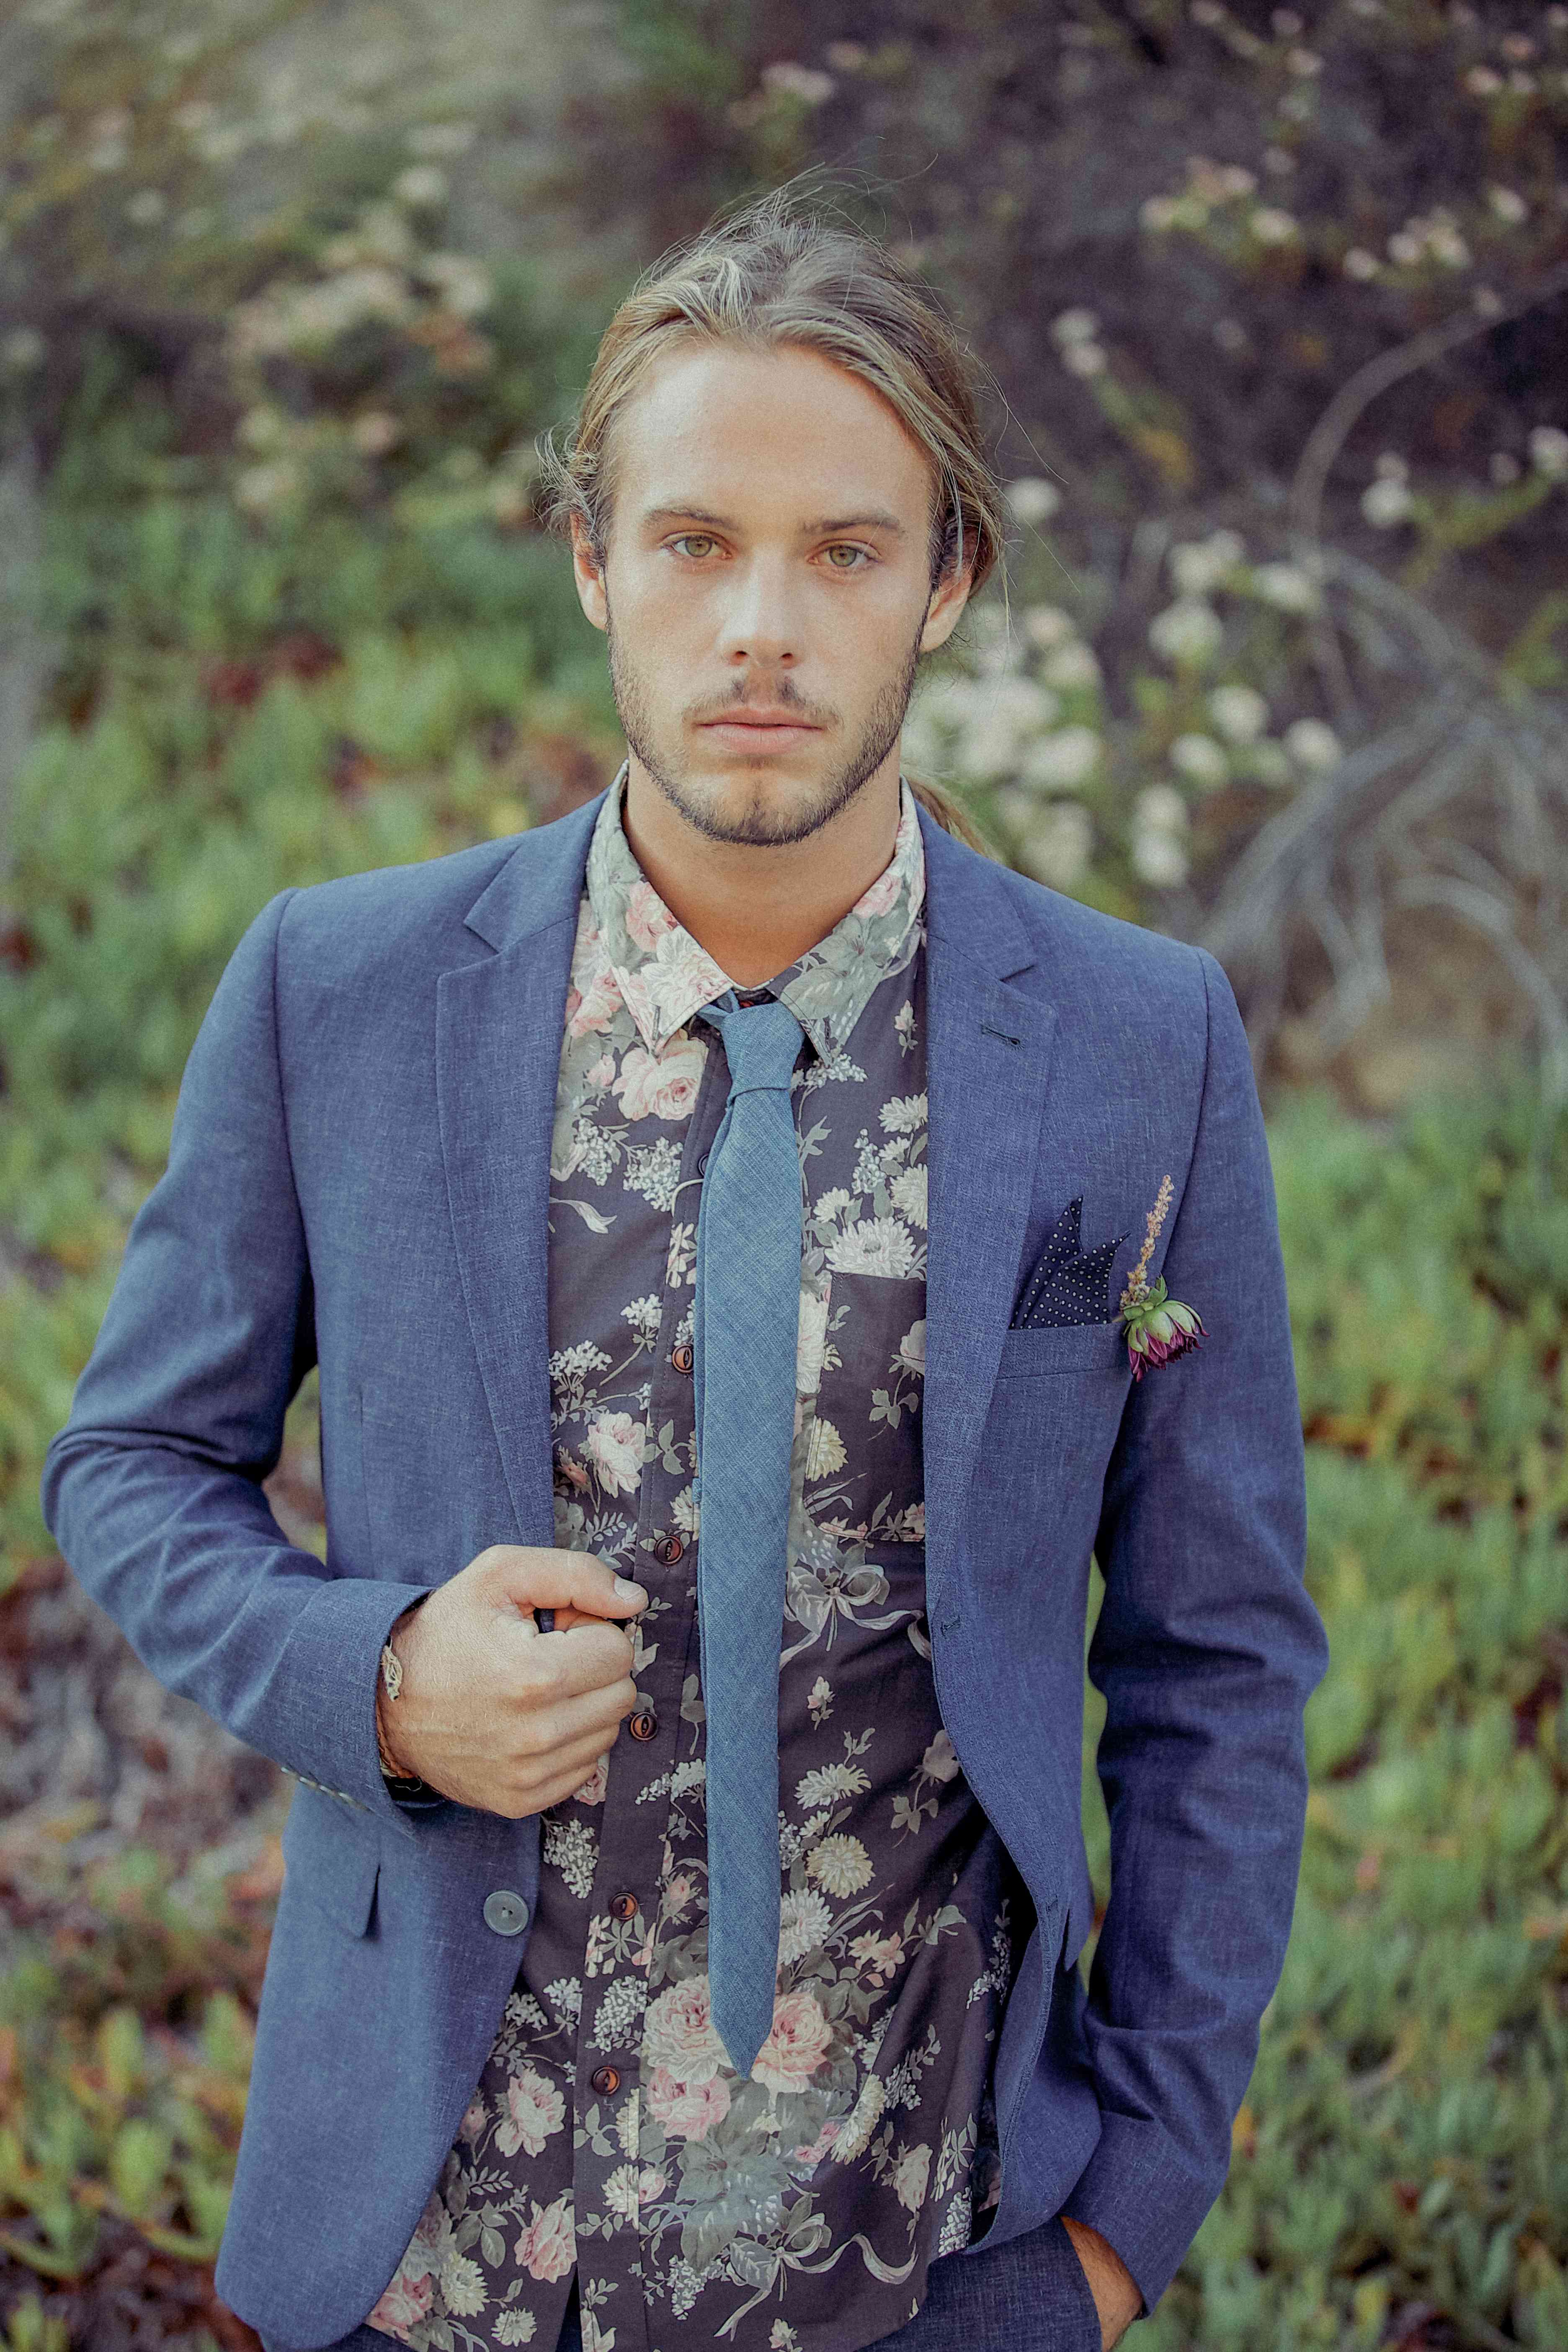 Groom in a floral shirt